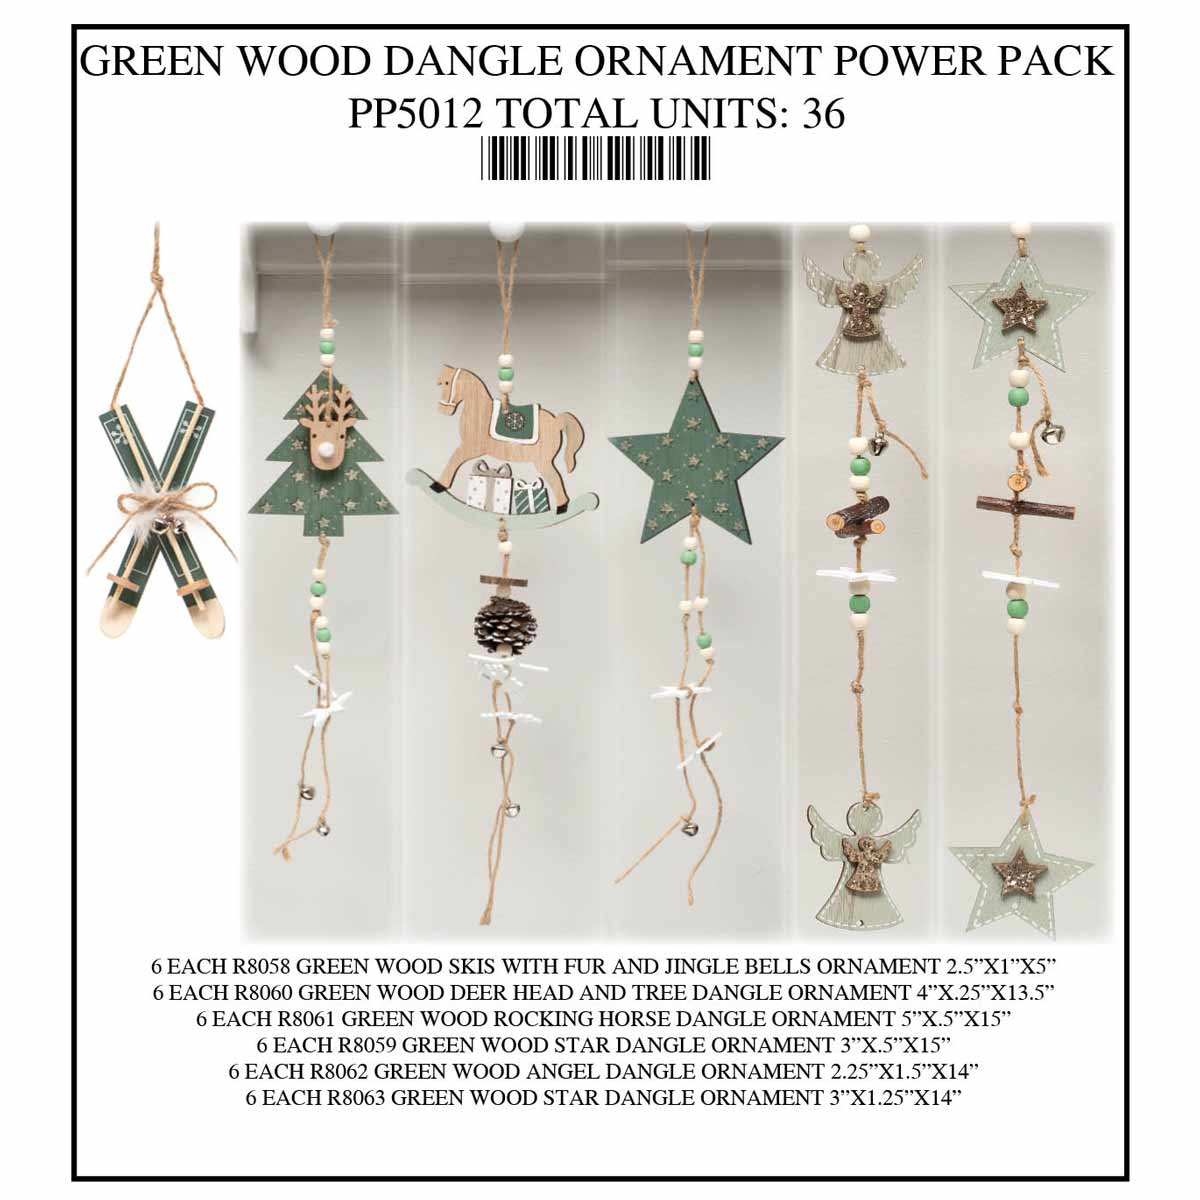 GREEN AND WHITE ORNAMENT POWER PACK 36 UNITS PP5012